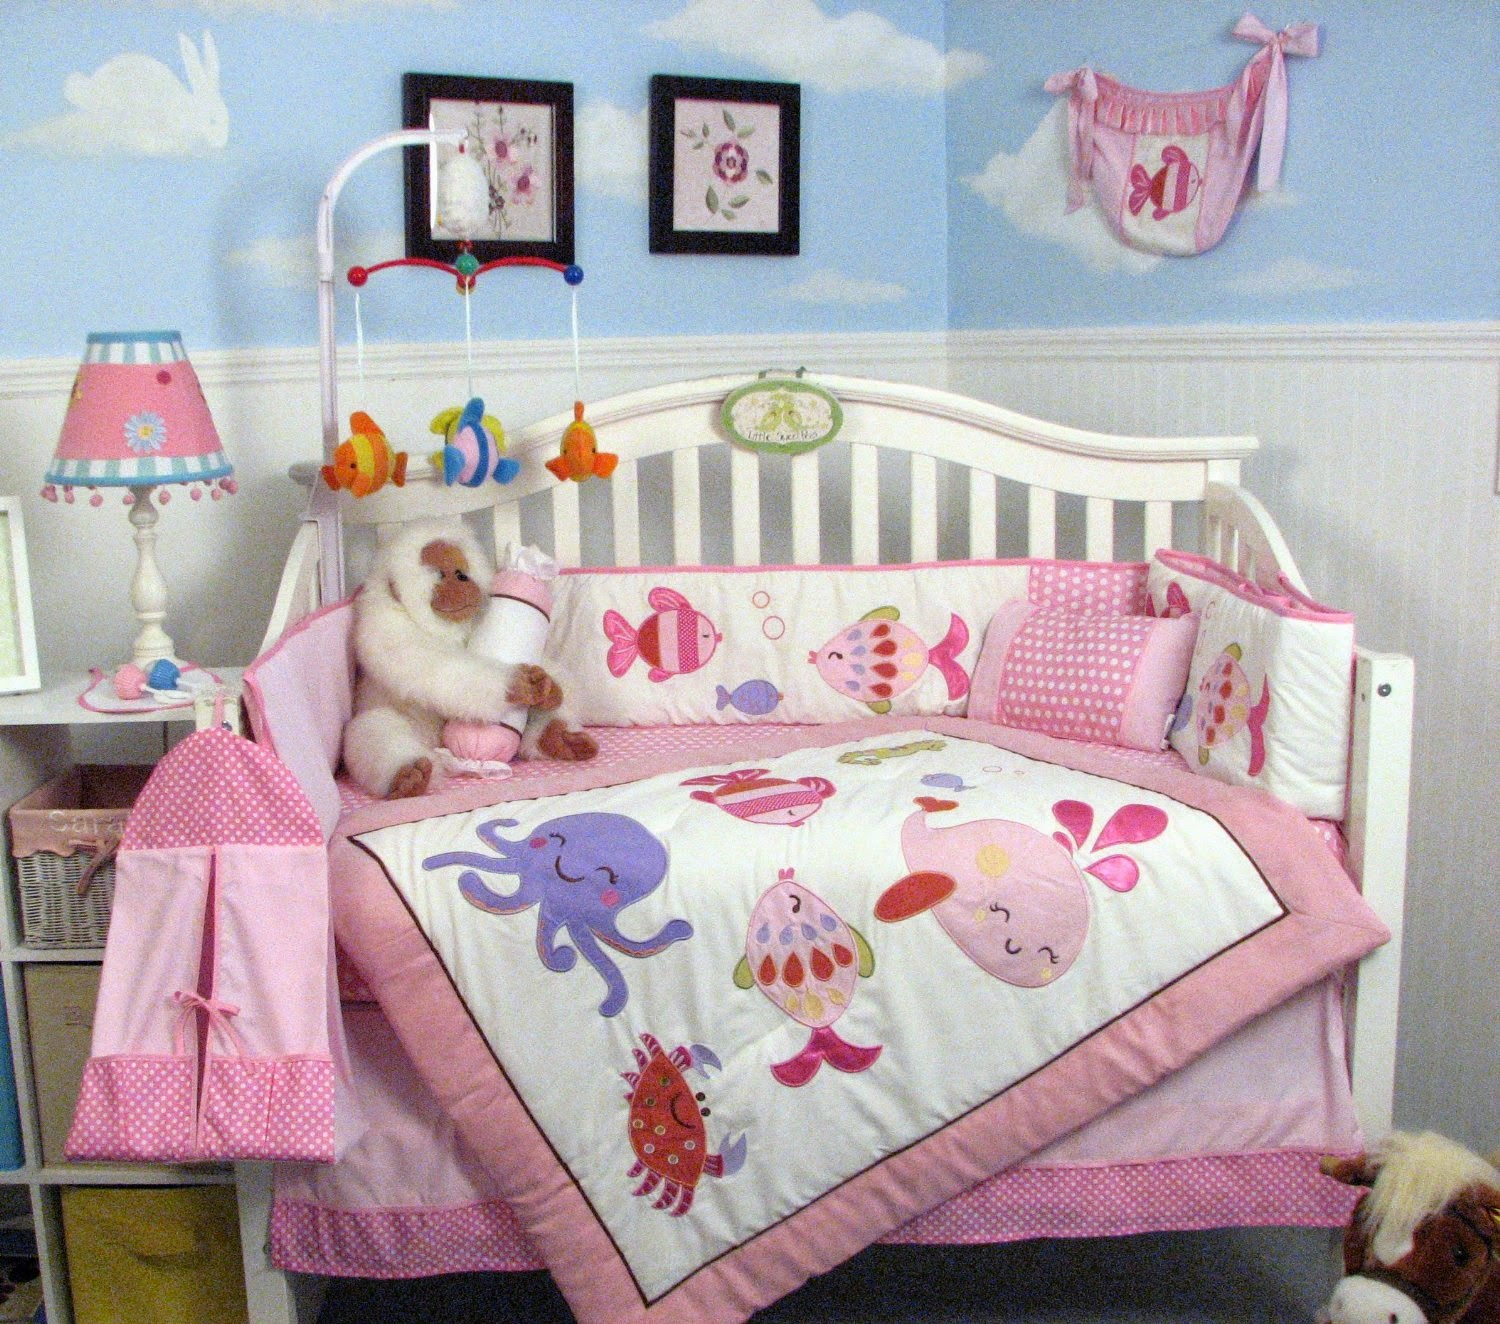 Here Is Another One Of Those Great Soho Nursery Sets That Has A Ton Decor Items Come In Very Reasonably Priced Package This Sea Sweetie Set